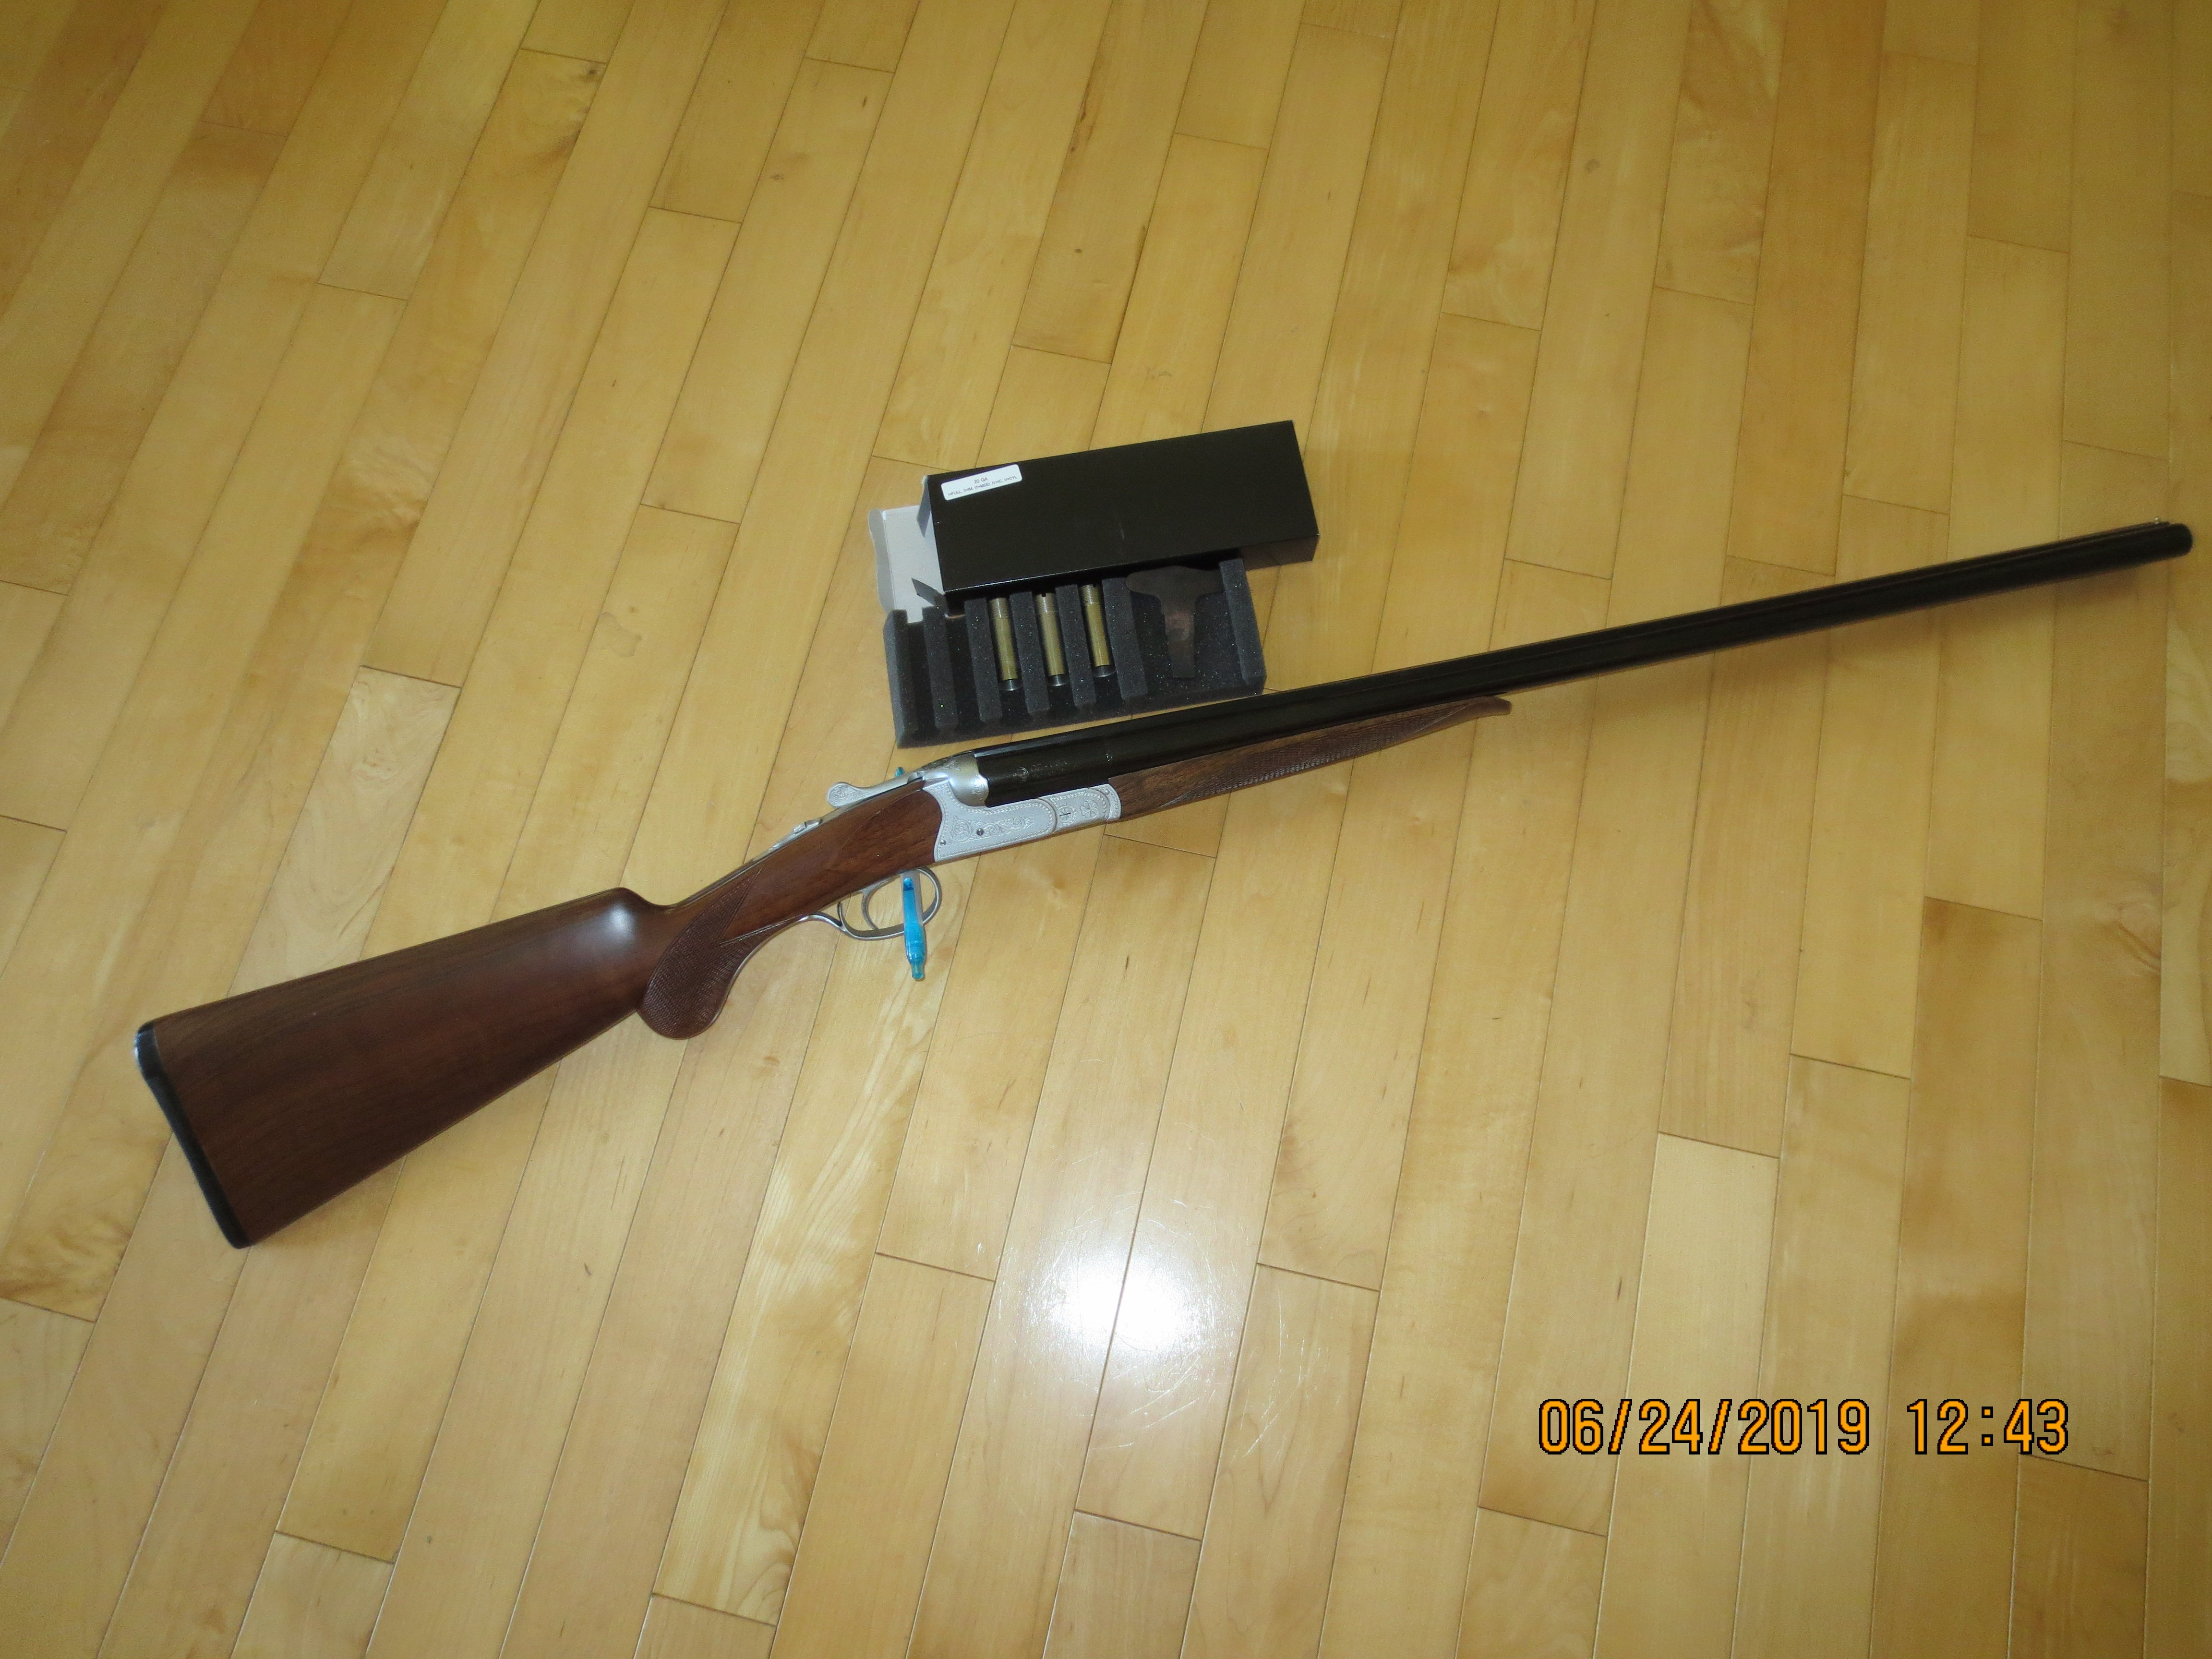 FS CZ Grouse 20 ga double barrel - Classified Ads - CouesWhitetail